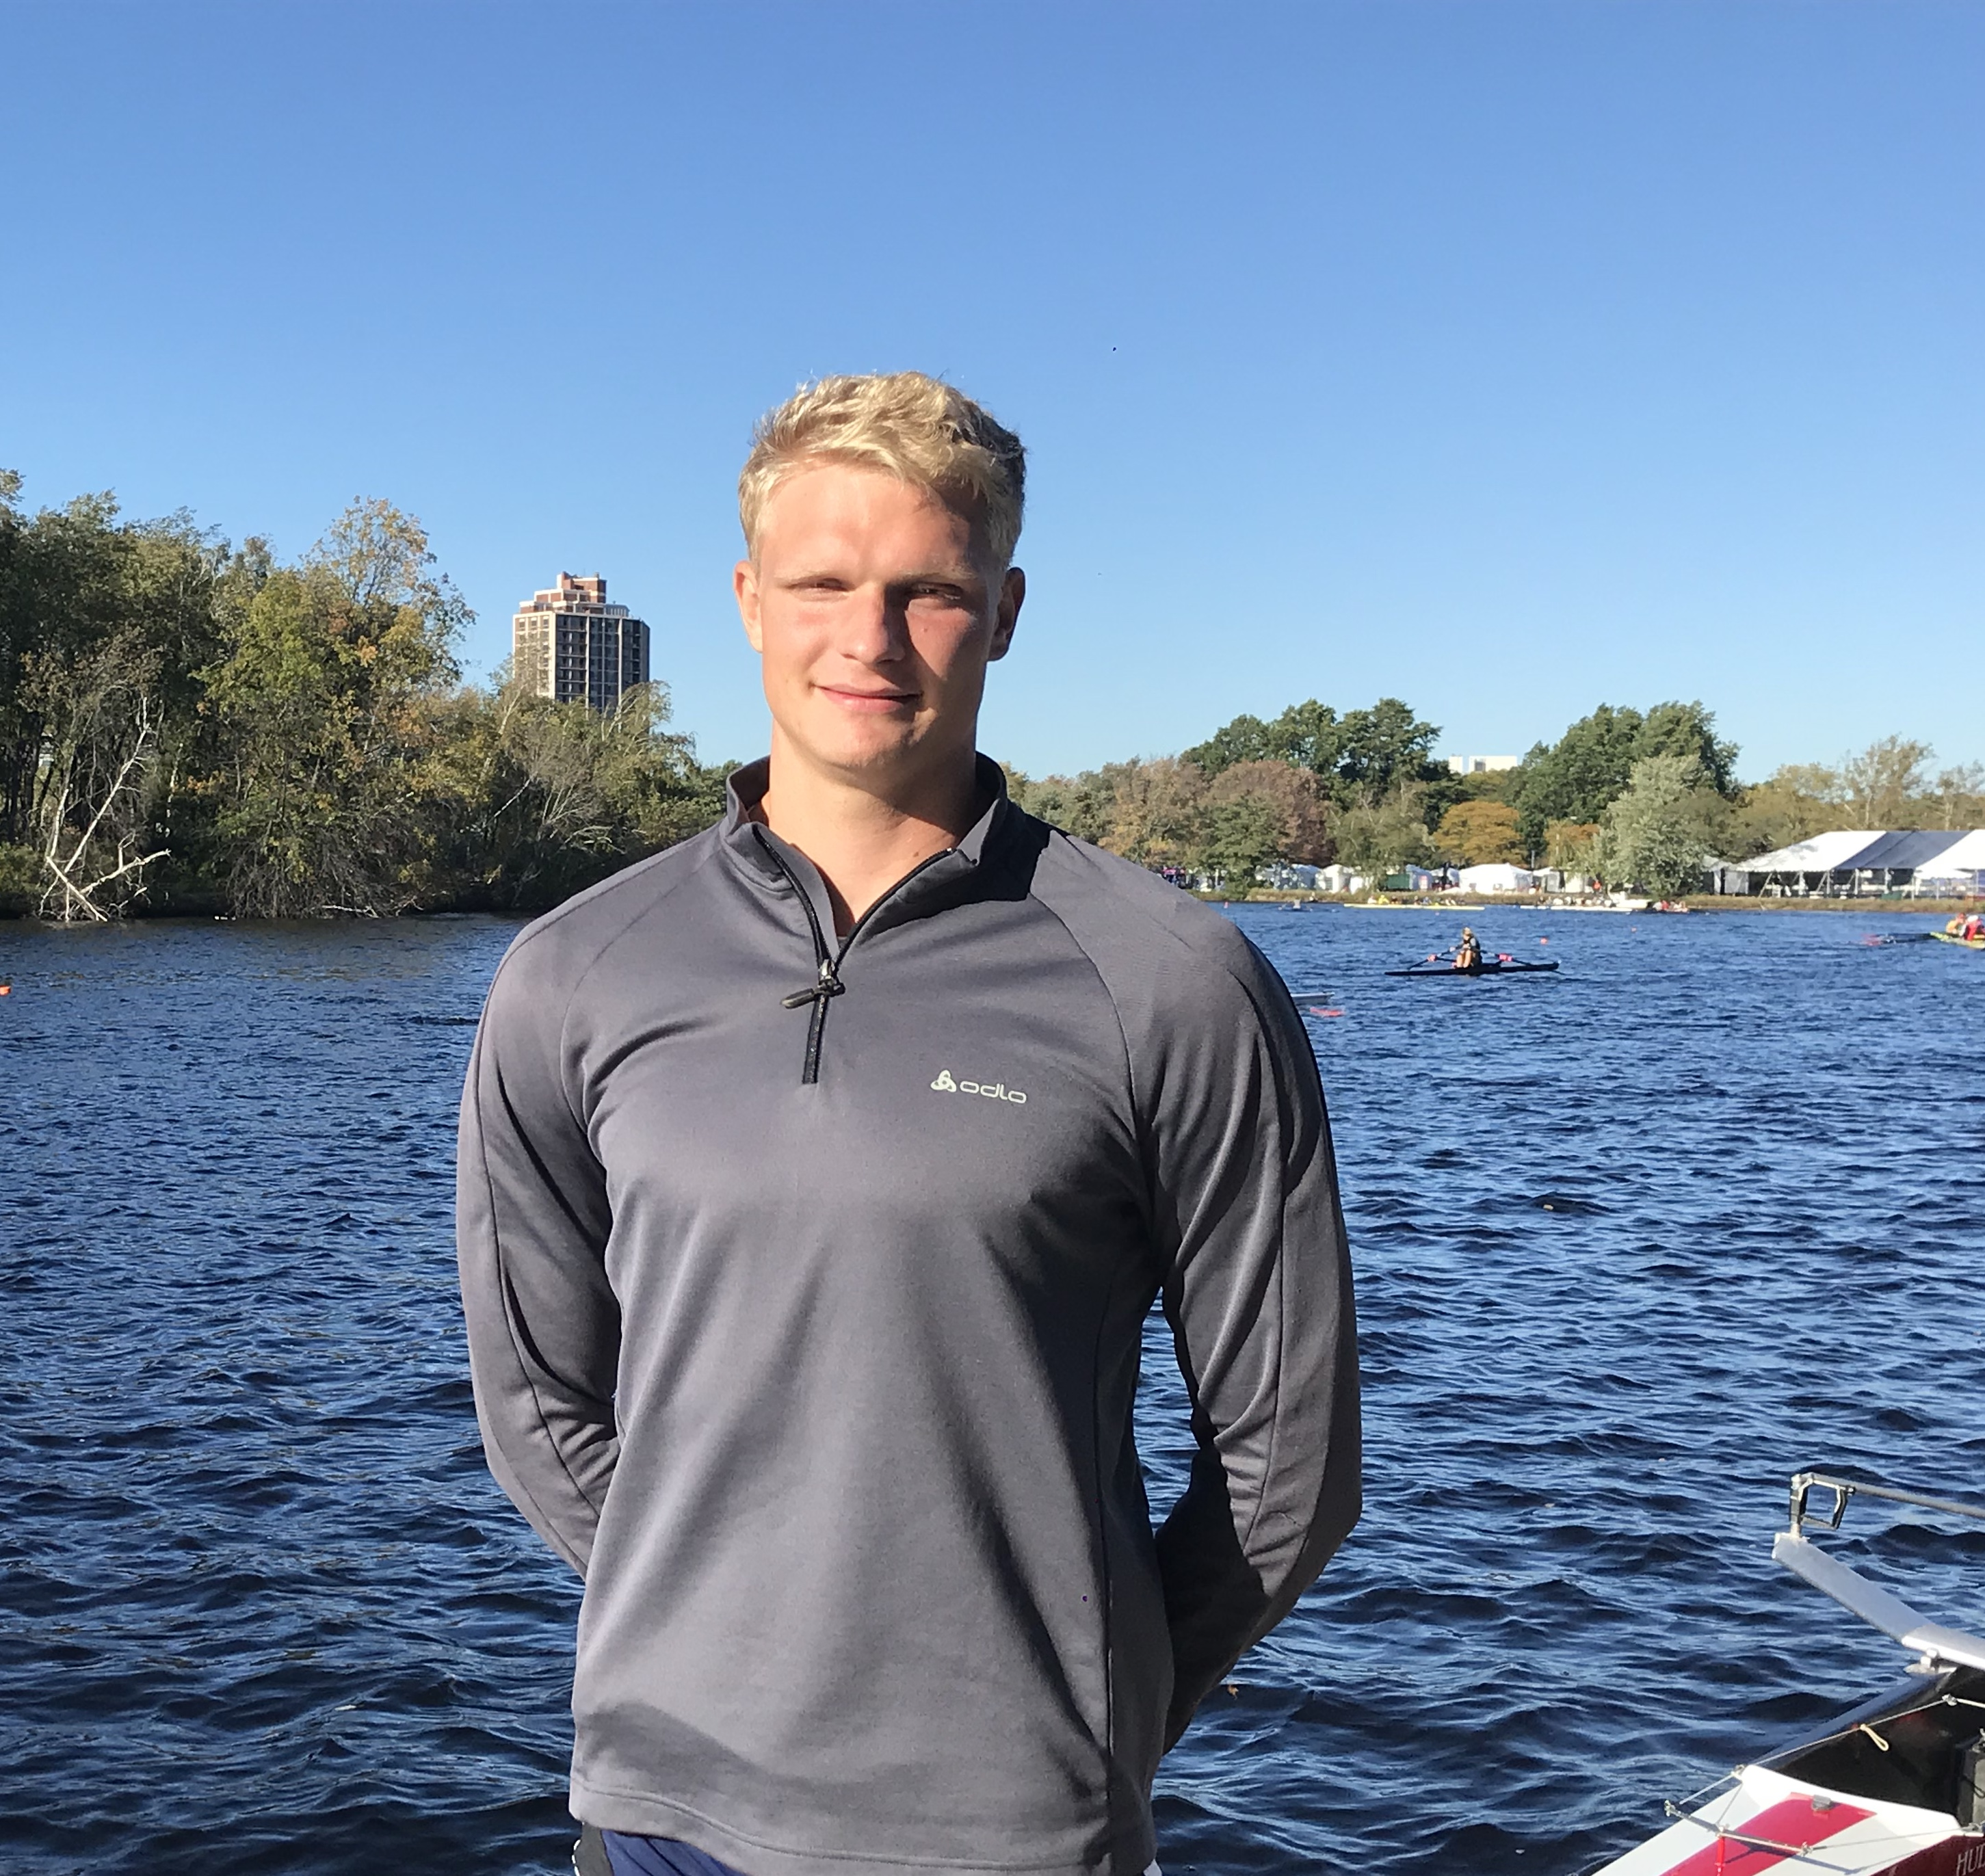 Germany's Oliver Zeidler is Rowing's Newest Wunderkind